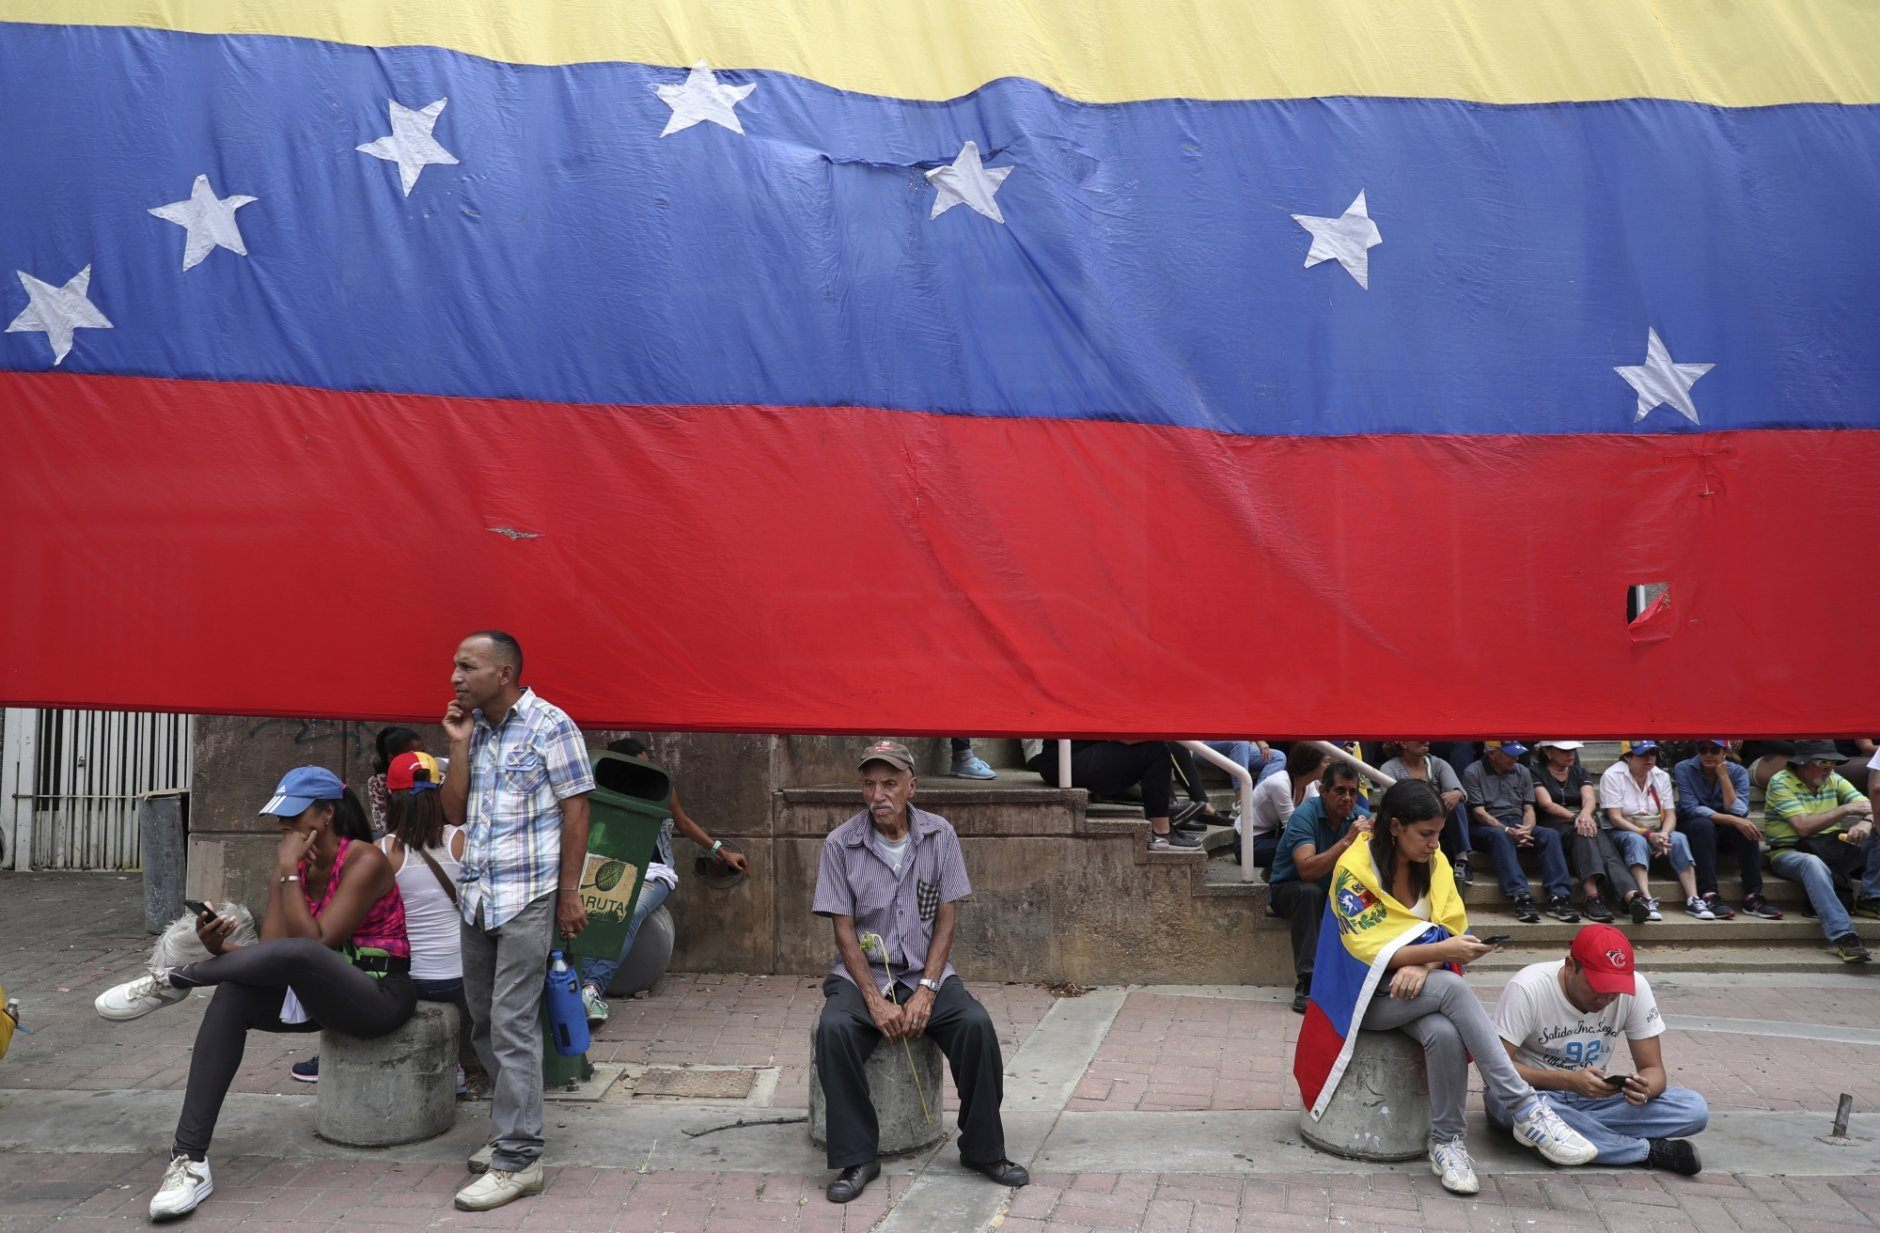 Opponents of the Nicolas Maduro government wait for the arrival of opposition leader Juan Guaidó to lead a rally in Caracas, Venezuela, Saturday, May 11, 2019. Guaidó has called for nationwide marches protesting the Maduro government, demanding new elections and the release of jailed opposition lawmakers. (AP Photo/Martin Mejia)